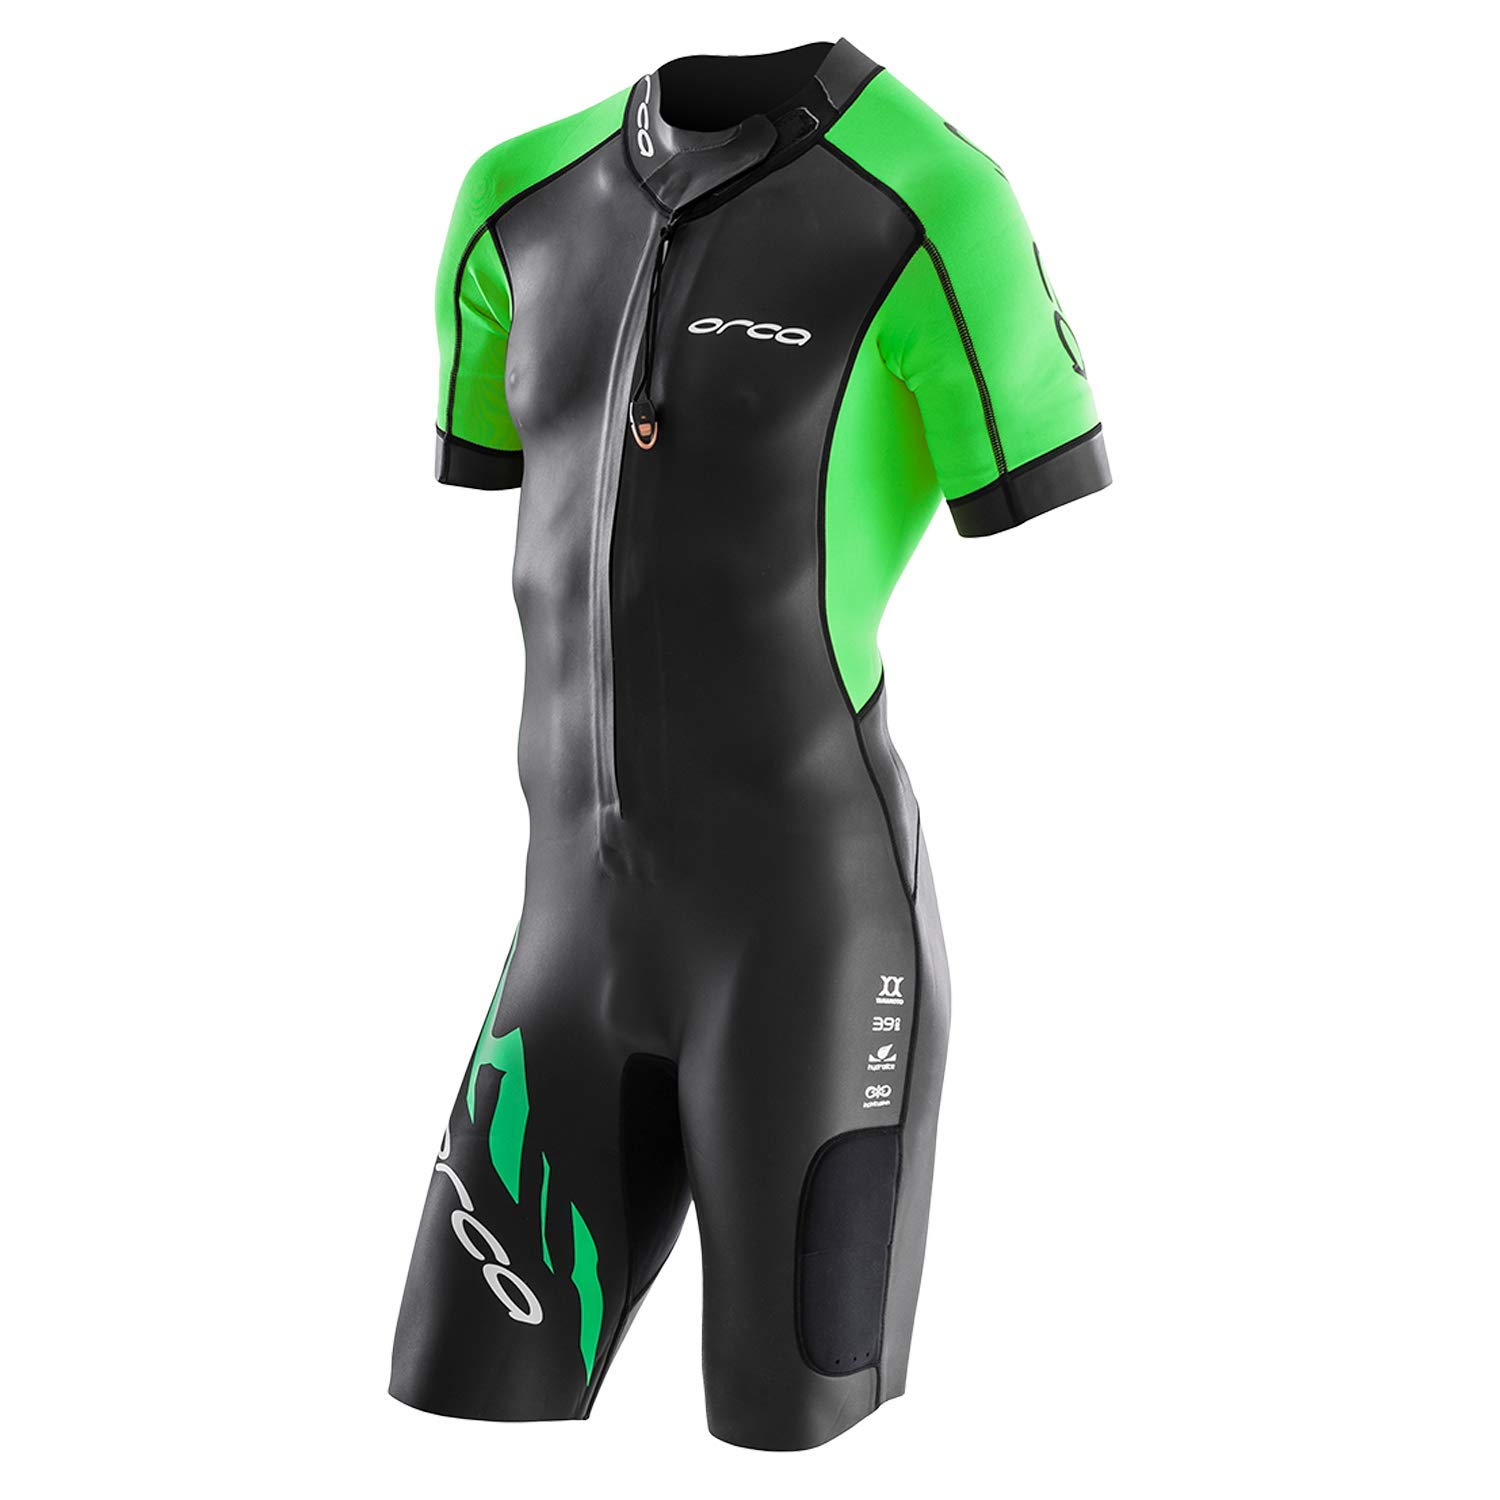 ORCA SwimRun Core Mens One Piece Wetsuit (7) by ORCA (Image #1)